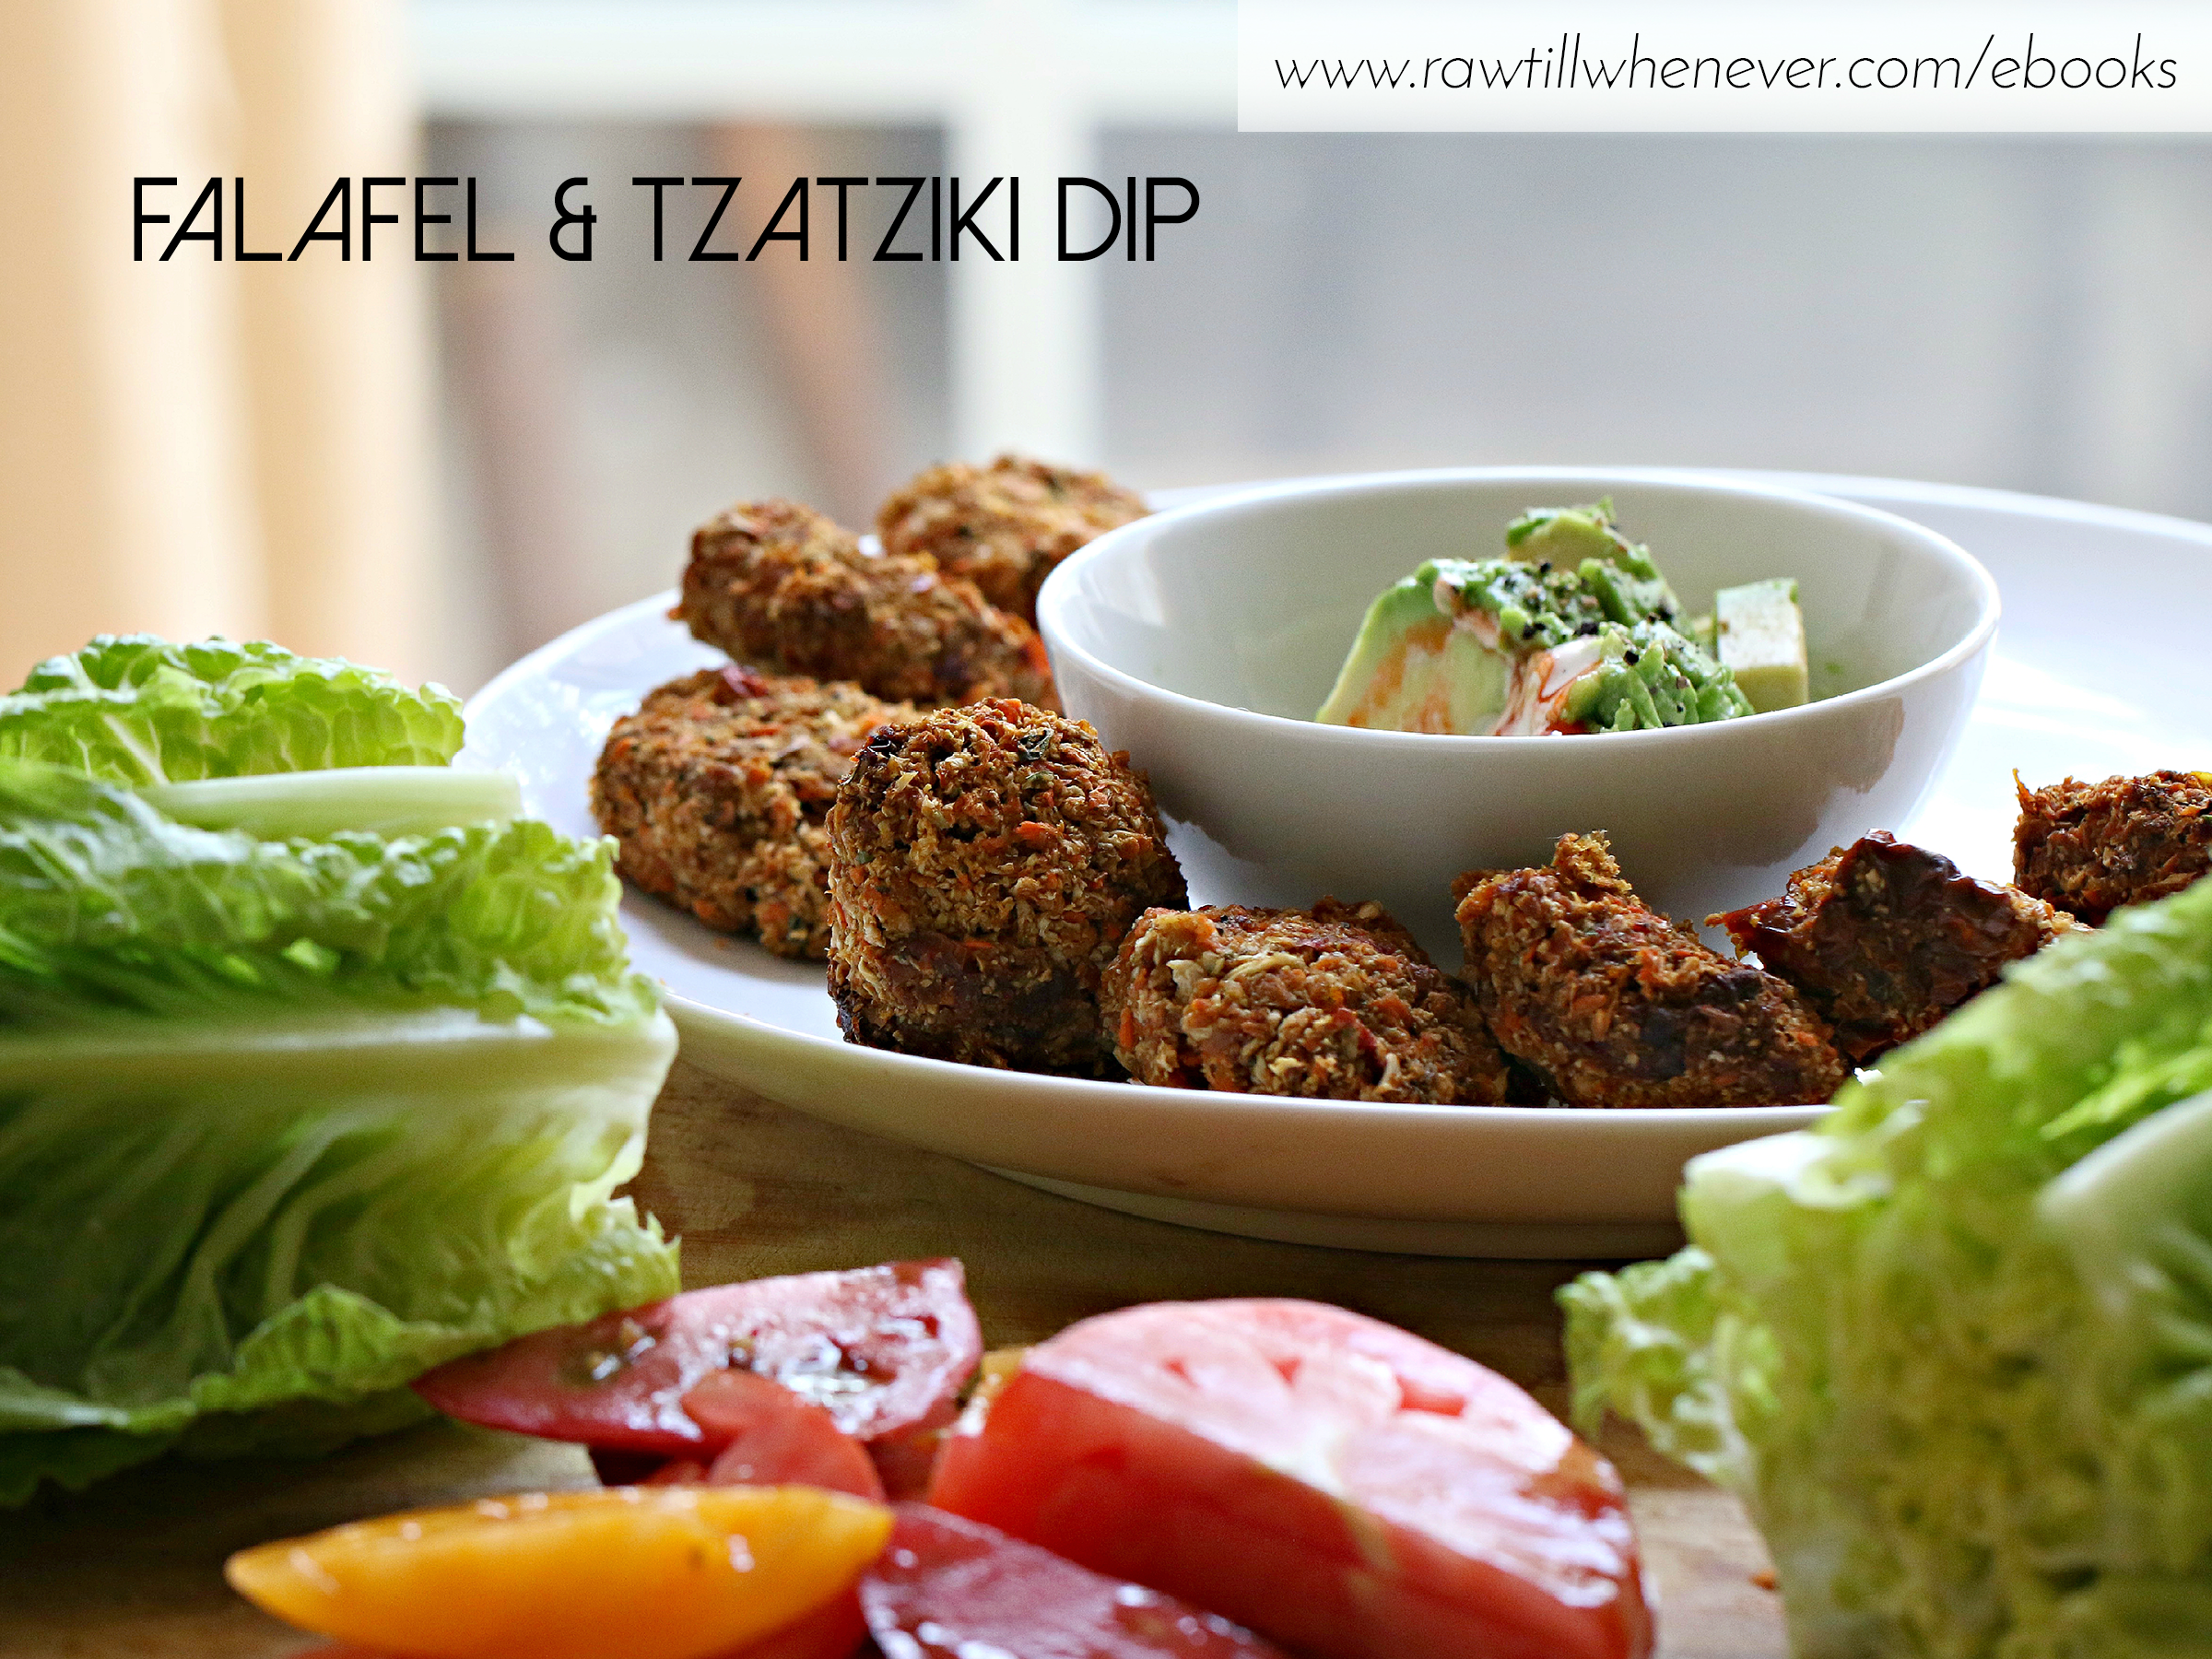 Falafel tzatziki dip recipe featured from my raw vegan recipe book falafel tzatziki dip recipe featured from my raw vegan recipe book ilikeitraw forumfinder Image collections